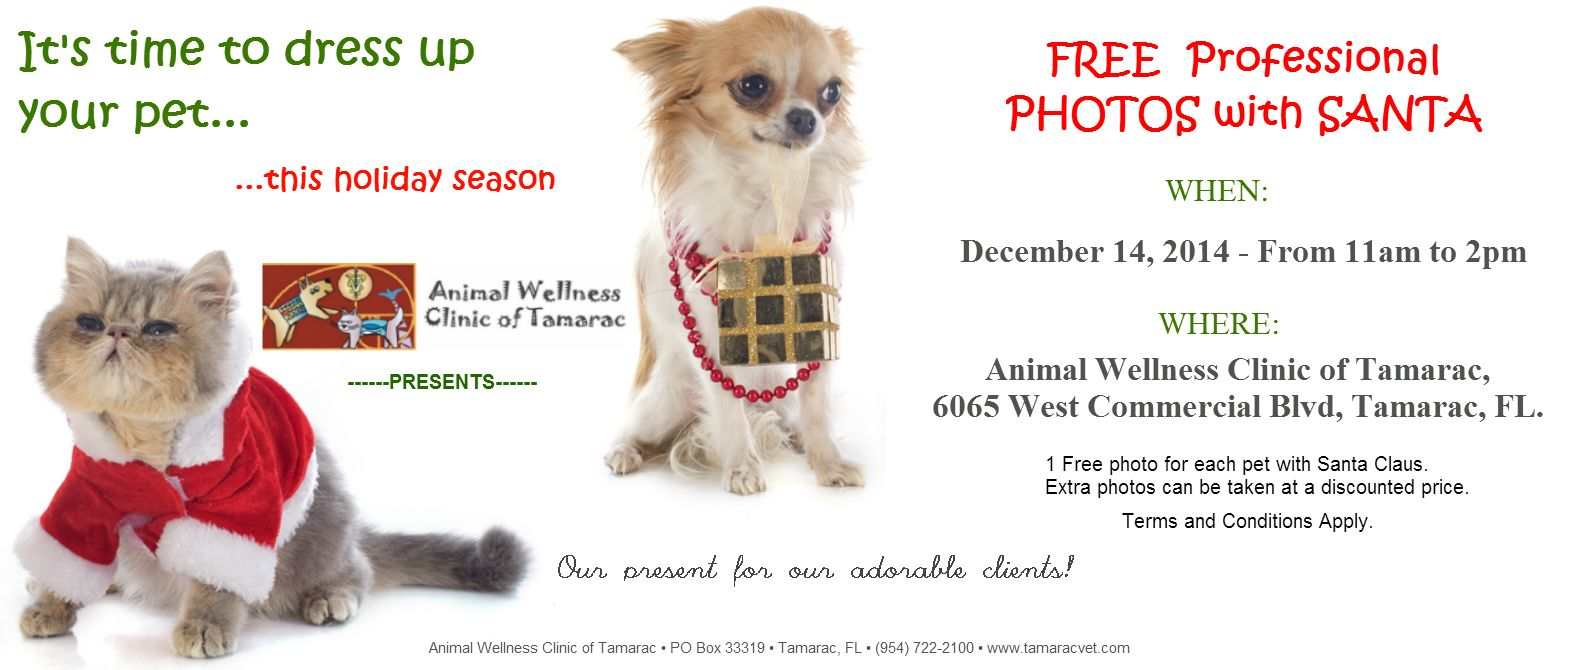 Santa Is On The Way Come To Celebrate With Us By Getting Your Petphotos Taken With Santa Http Tamaracvet Com Blog B 43900 Pet Pho With Images Wellness Clinic Pet Vet